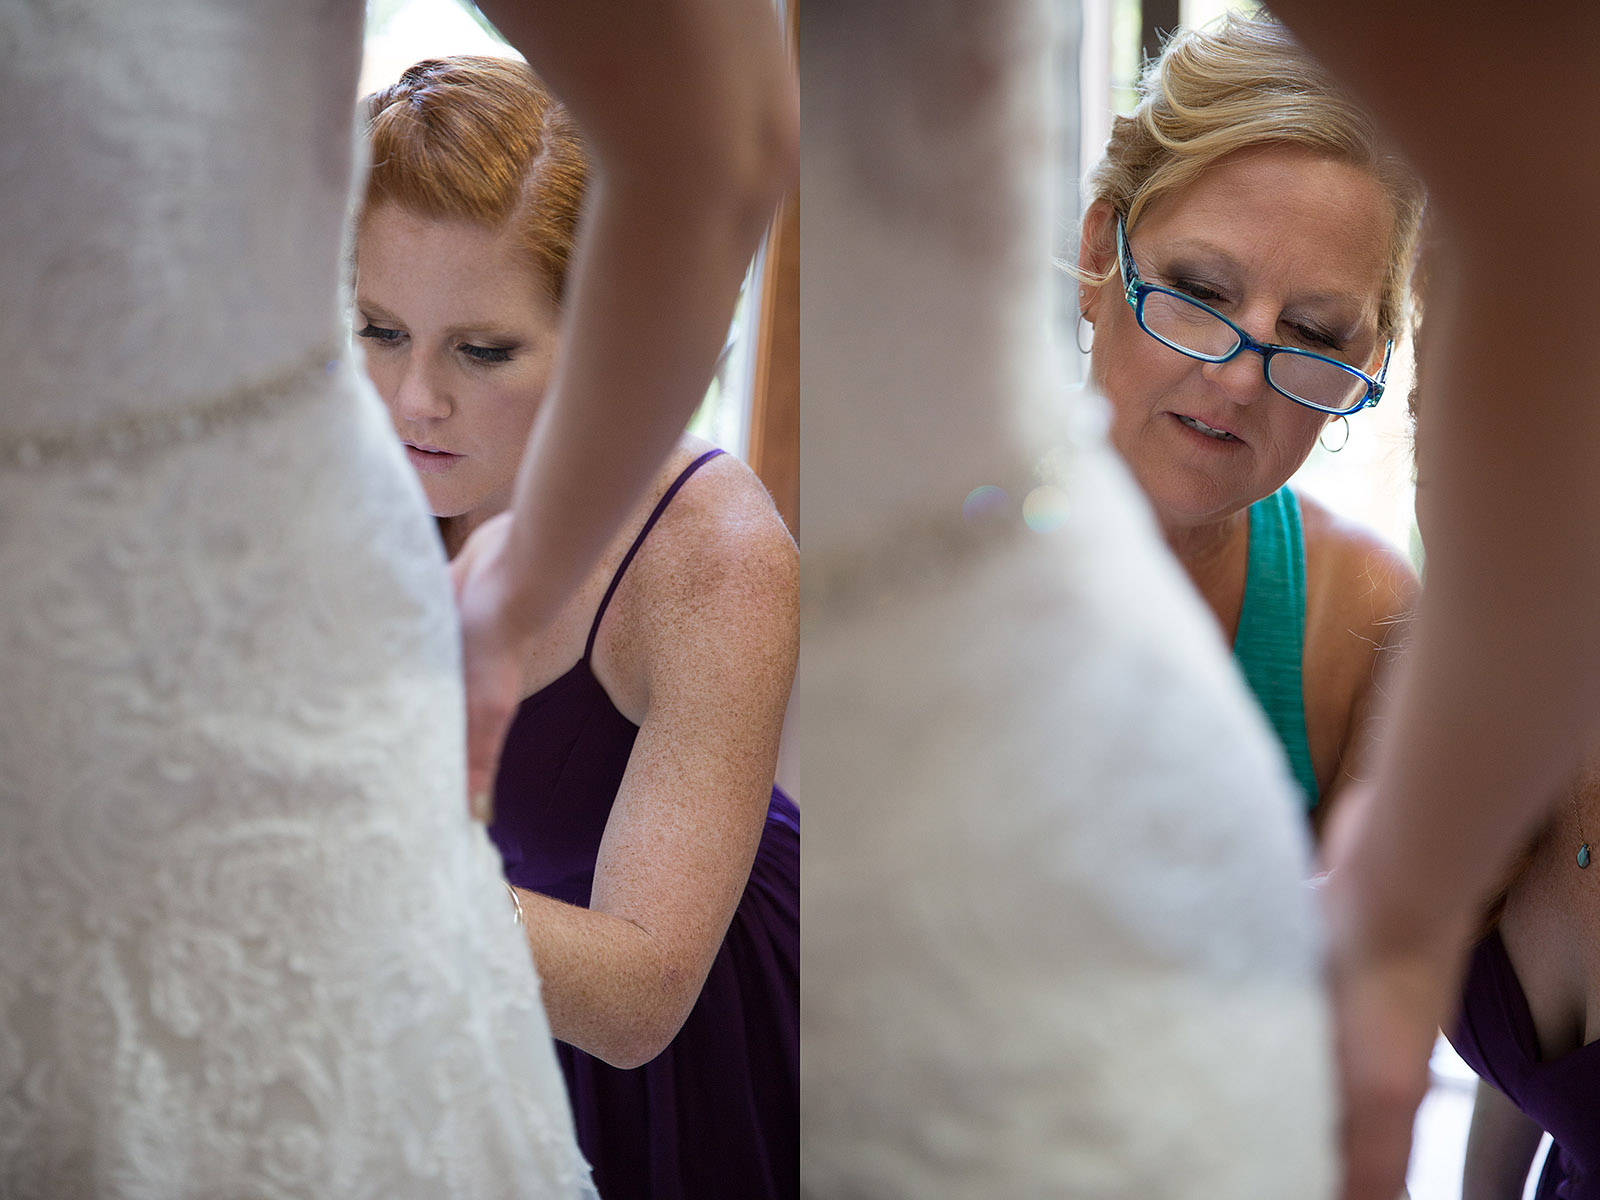 Maid Honor Mother Bride helping Dress